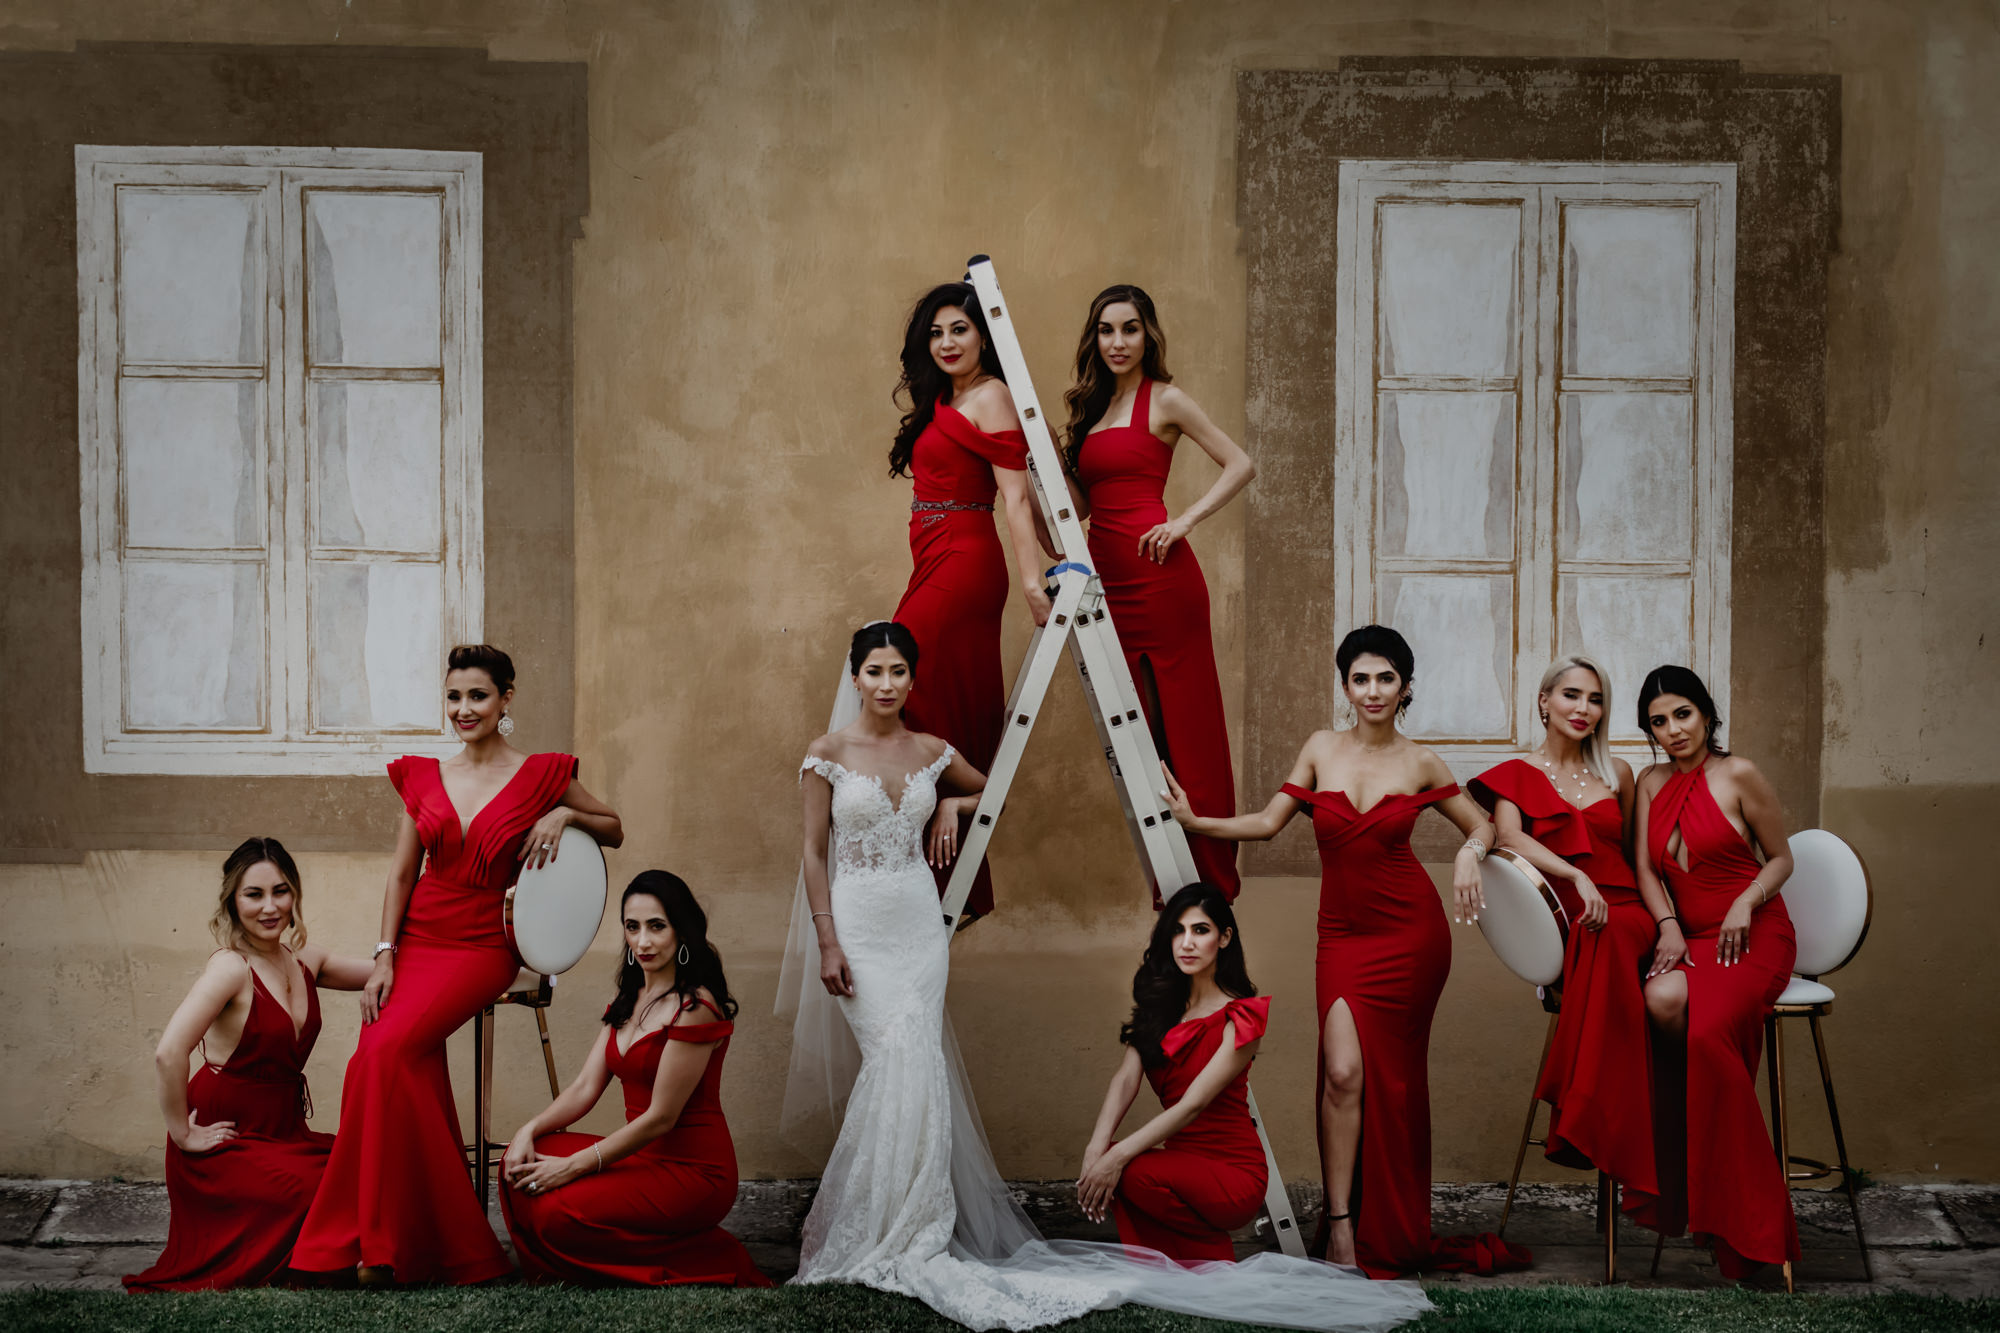 Elegant bridal party in red silk dresses with bride - portrait by David Bastianoni